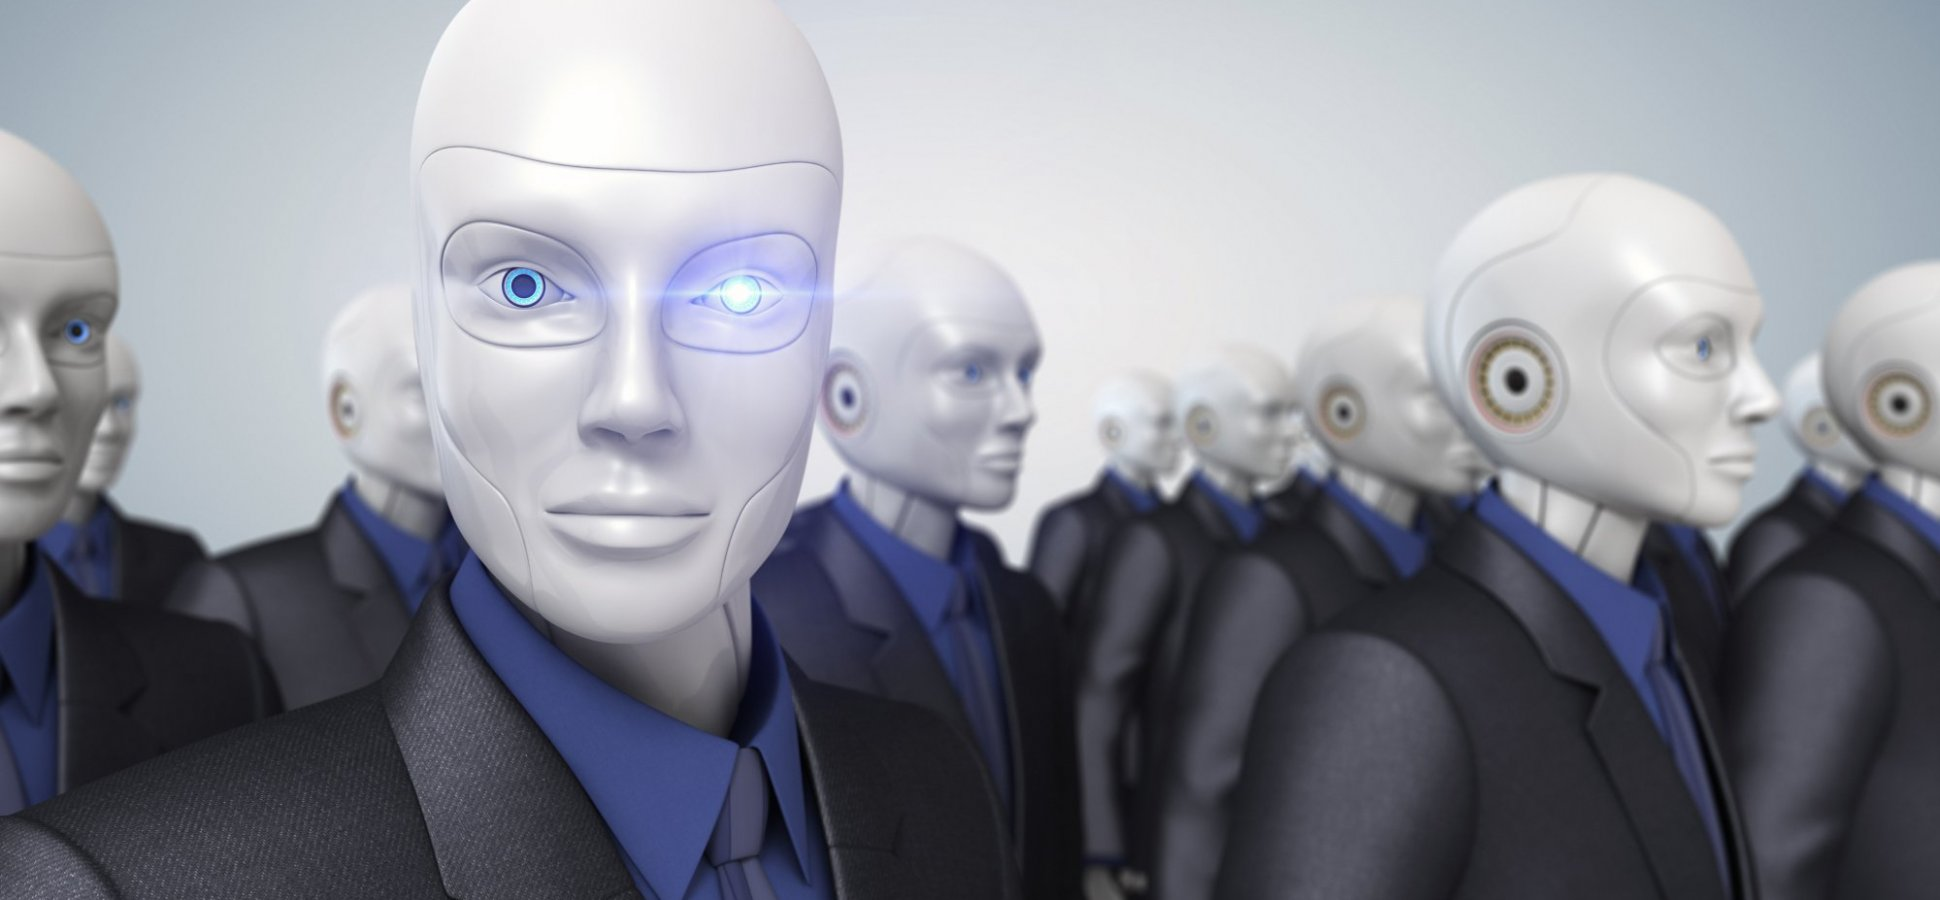 In Just 40 Seconds, the Idea That Their Jobs Were Safe From Robots Vanished Before Their Eyes